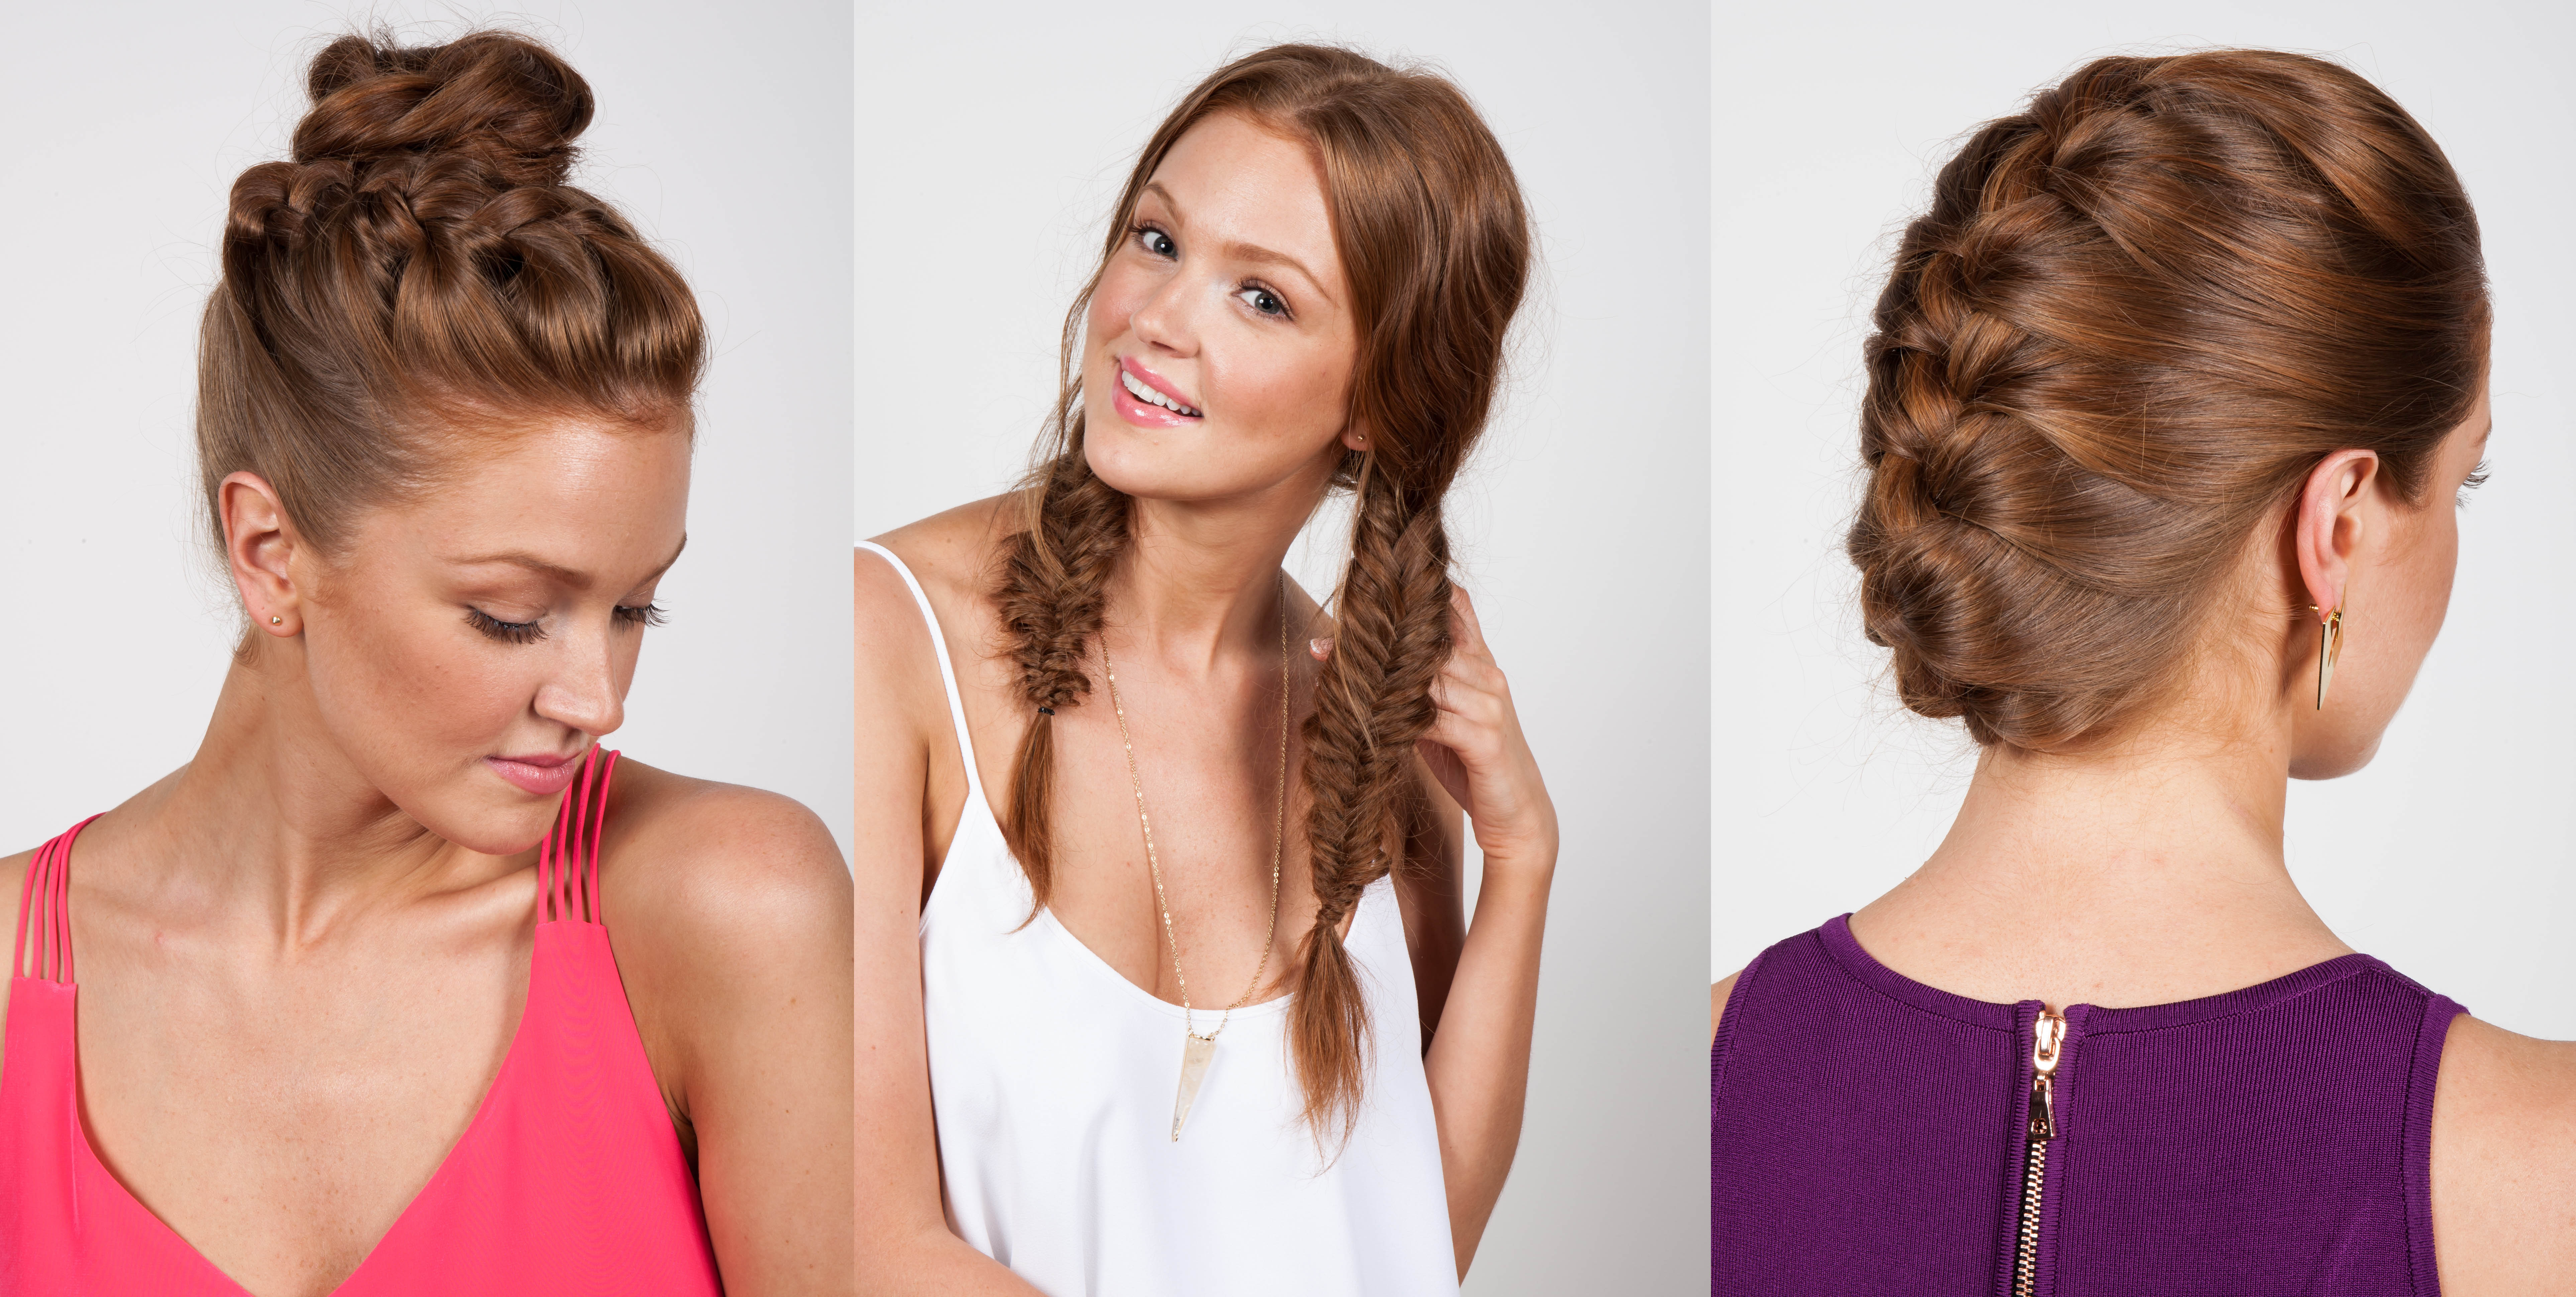 3 Pinterest-worthy braids to try right now